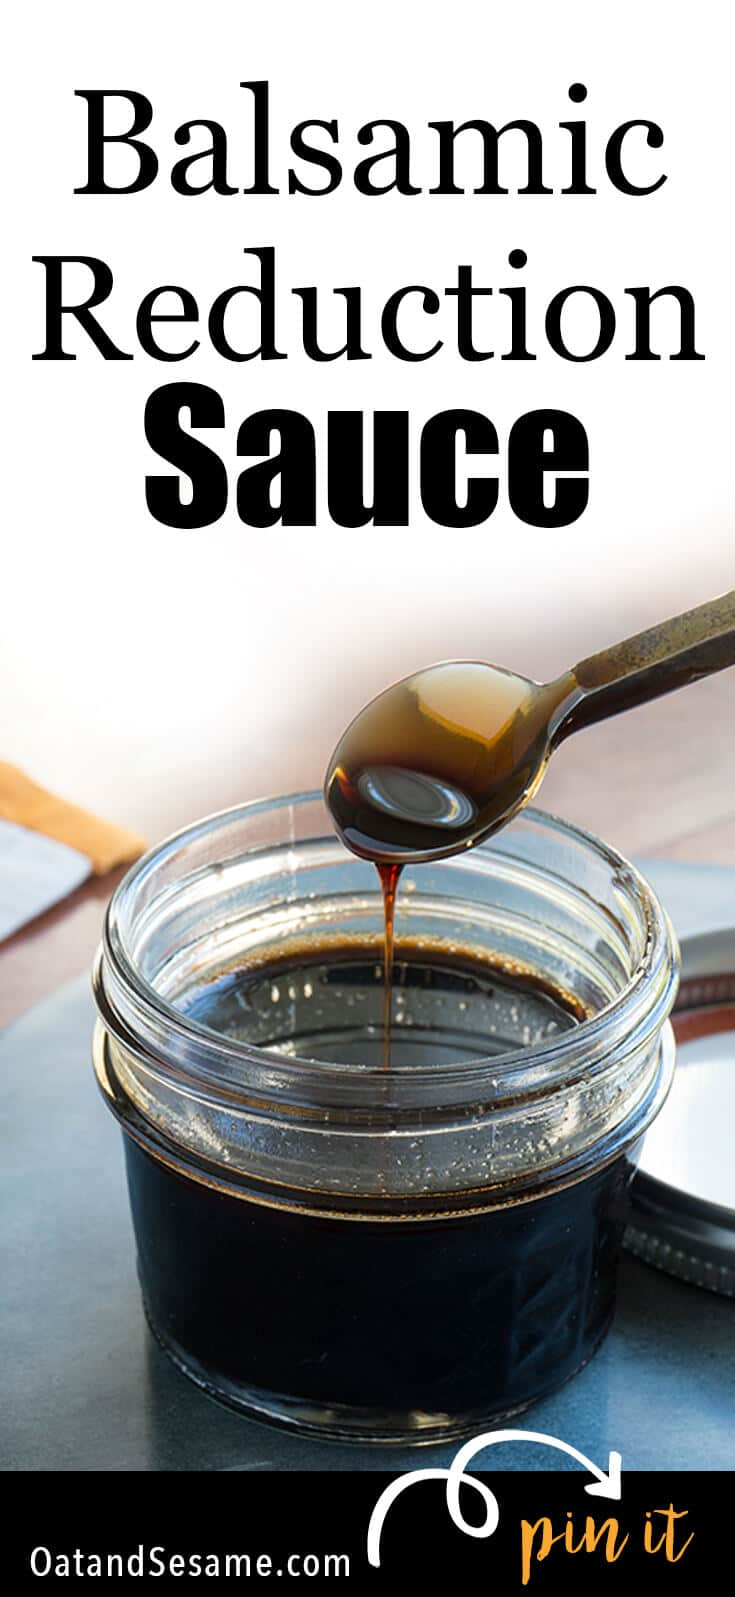 Balsamic Reduction Sauce in glass jar